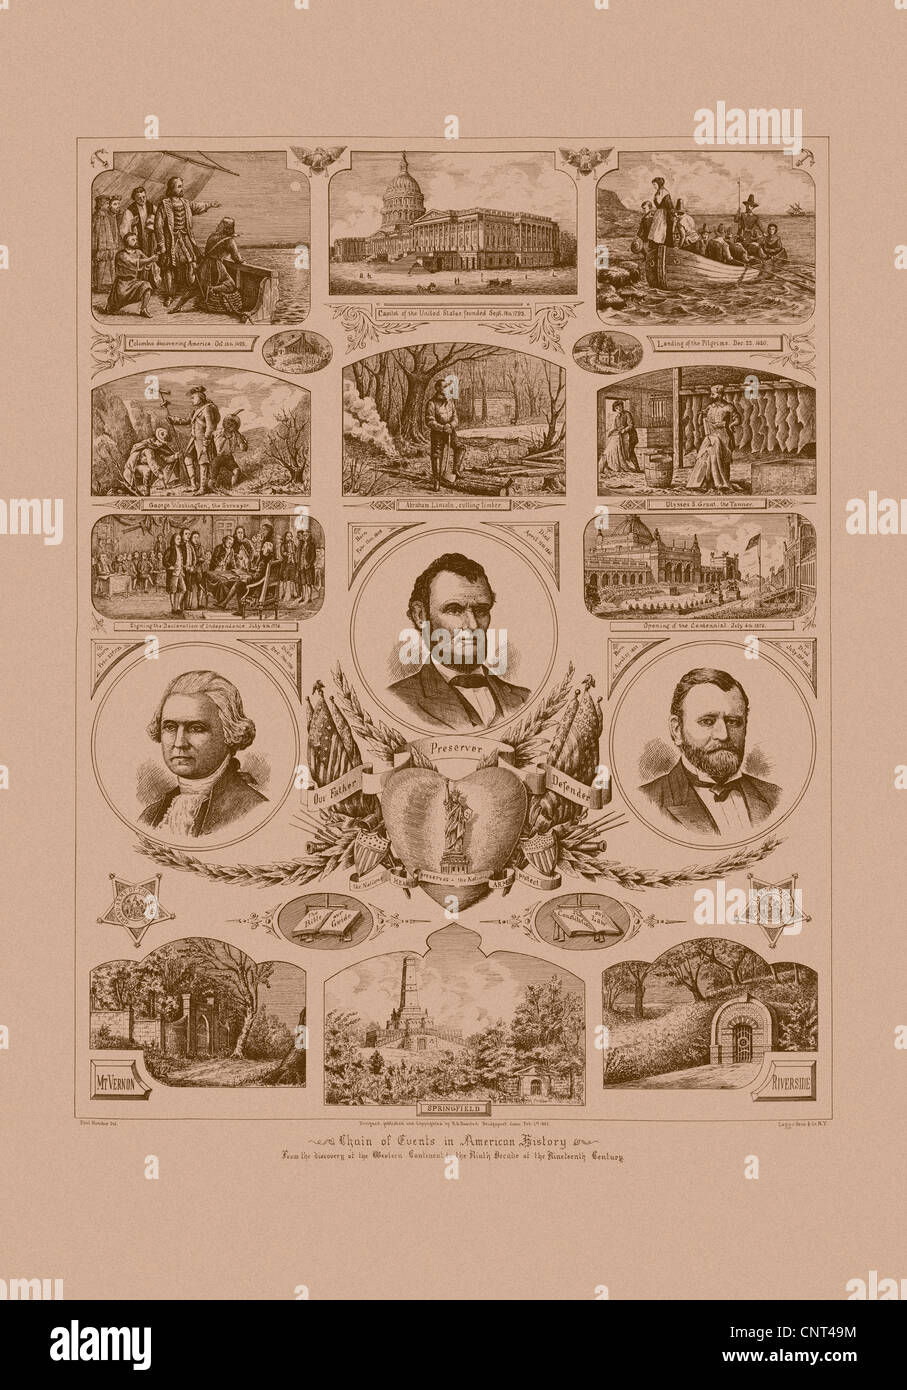 Vintage American history print featuring pictures of Presidents Ulysses S. Grant, Abraham Lincoln, and George Washington. - Stock Image